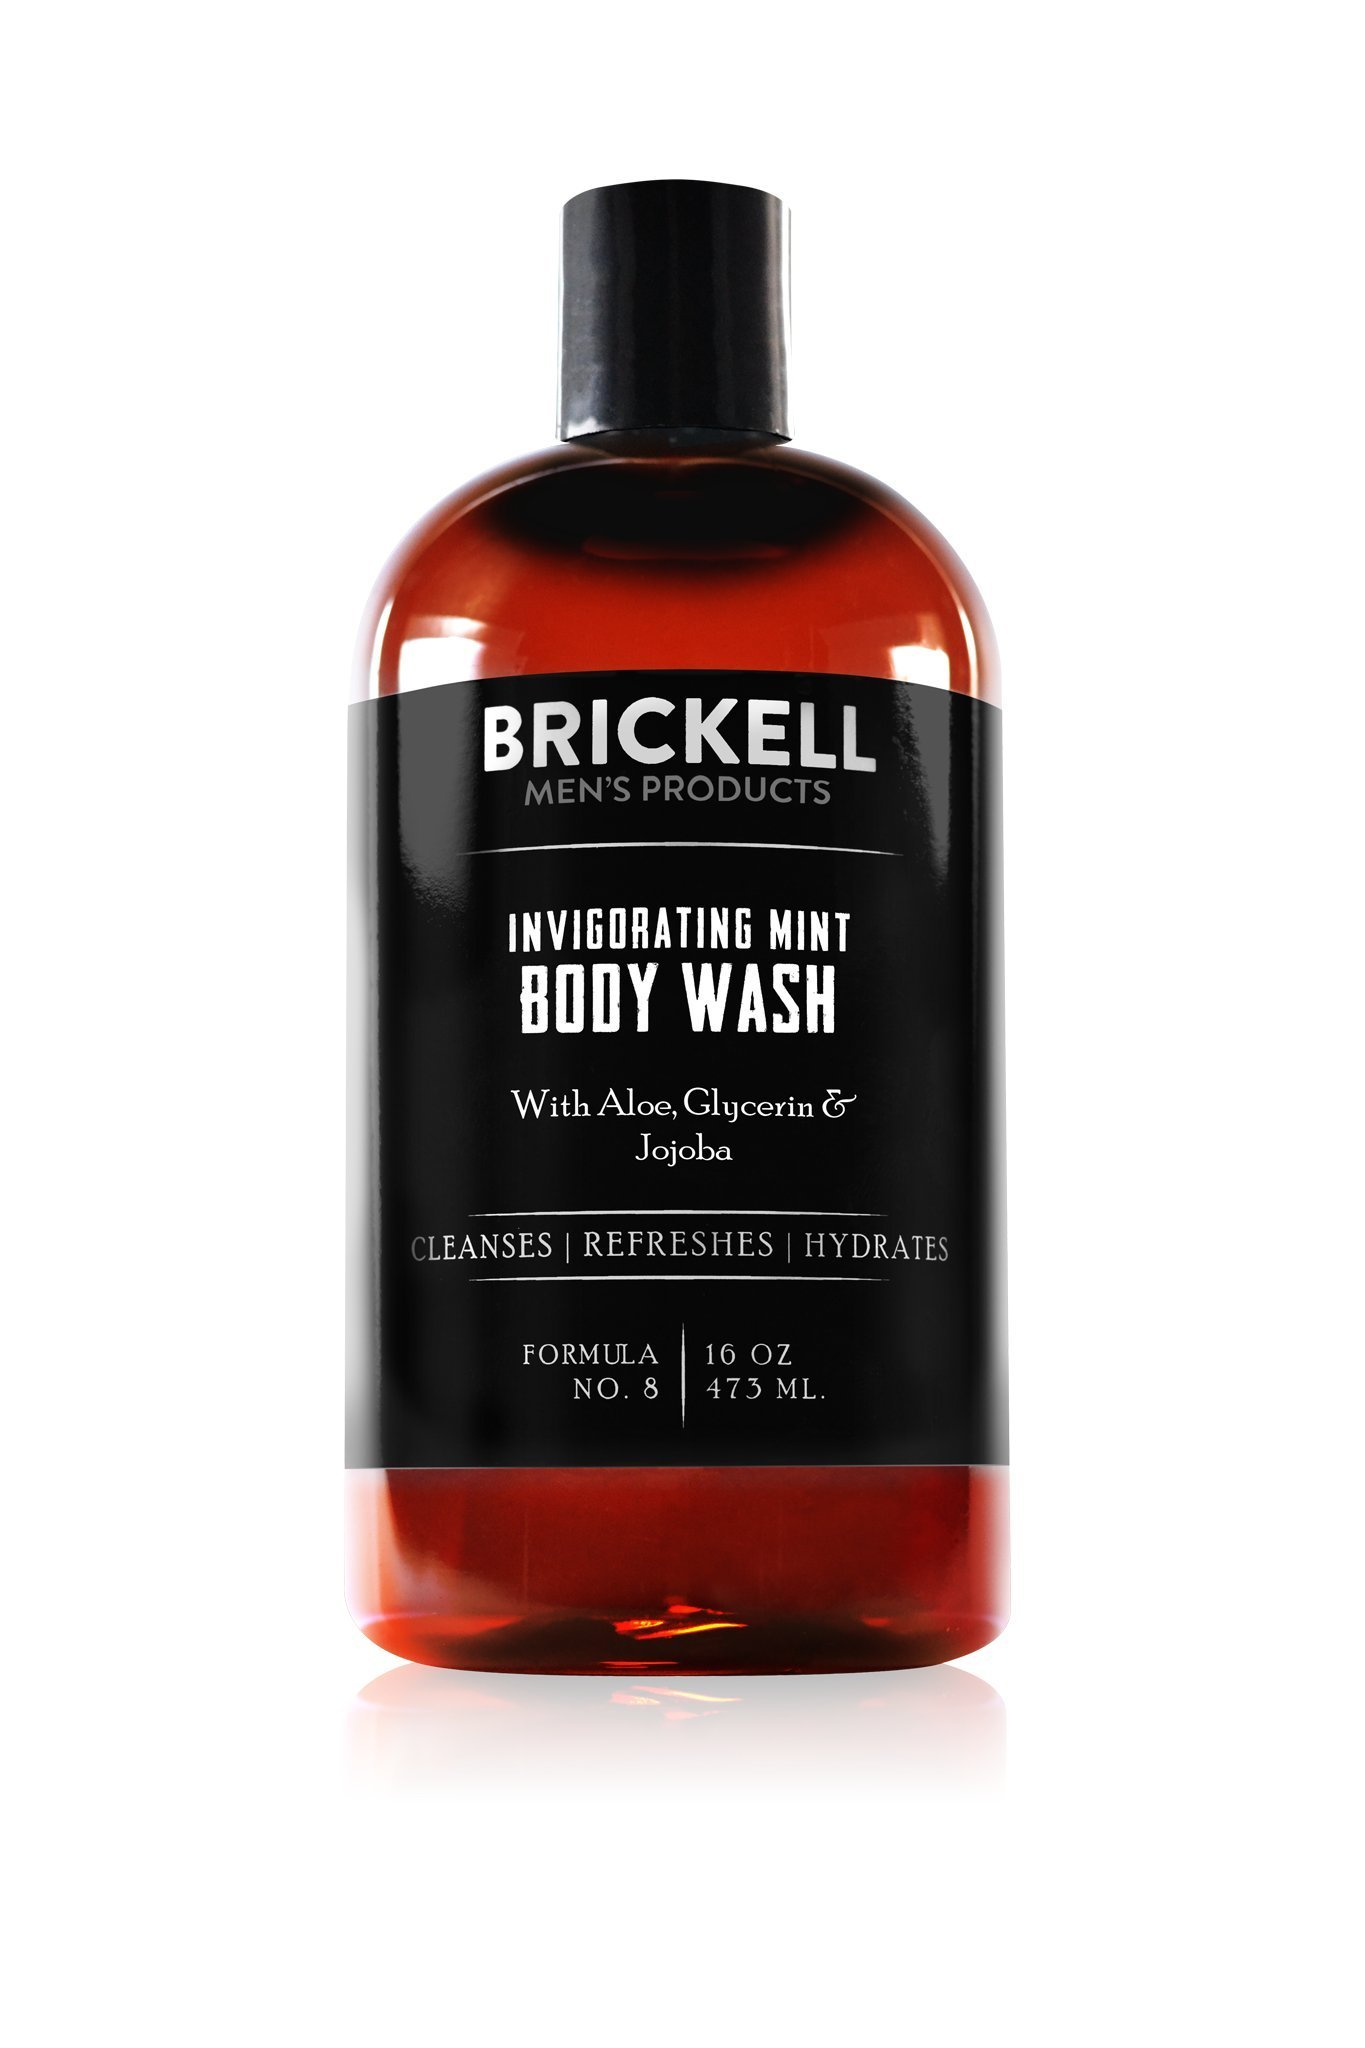 Brickell Men's Invigorating Mint Body Wash for Men, Natural and Organic Deep Cleaning Shower Gel with Aloe, Glycerin, and Jojoba, Sulfate Free, 16 Ounce, Scented by Brickell Men's Products